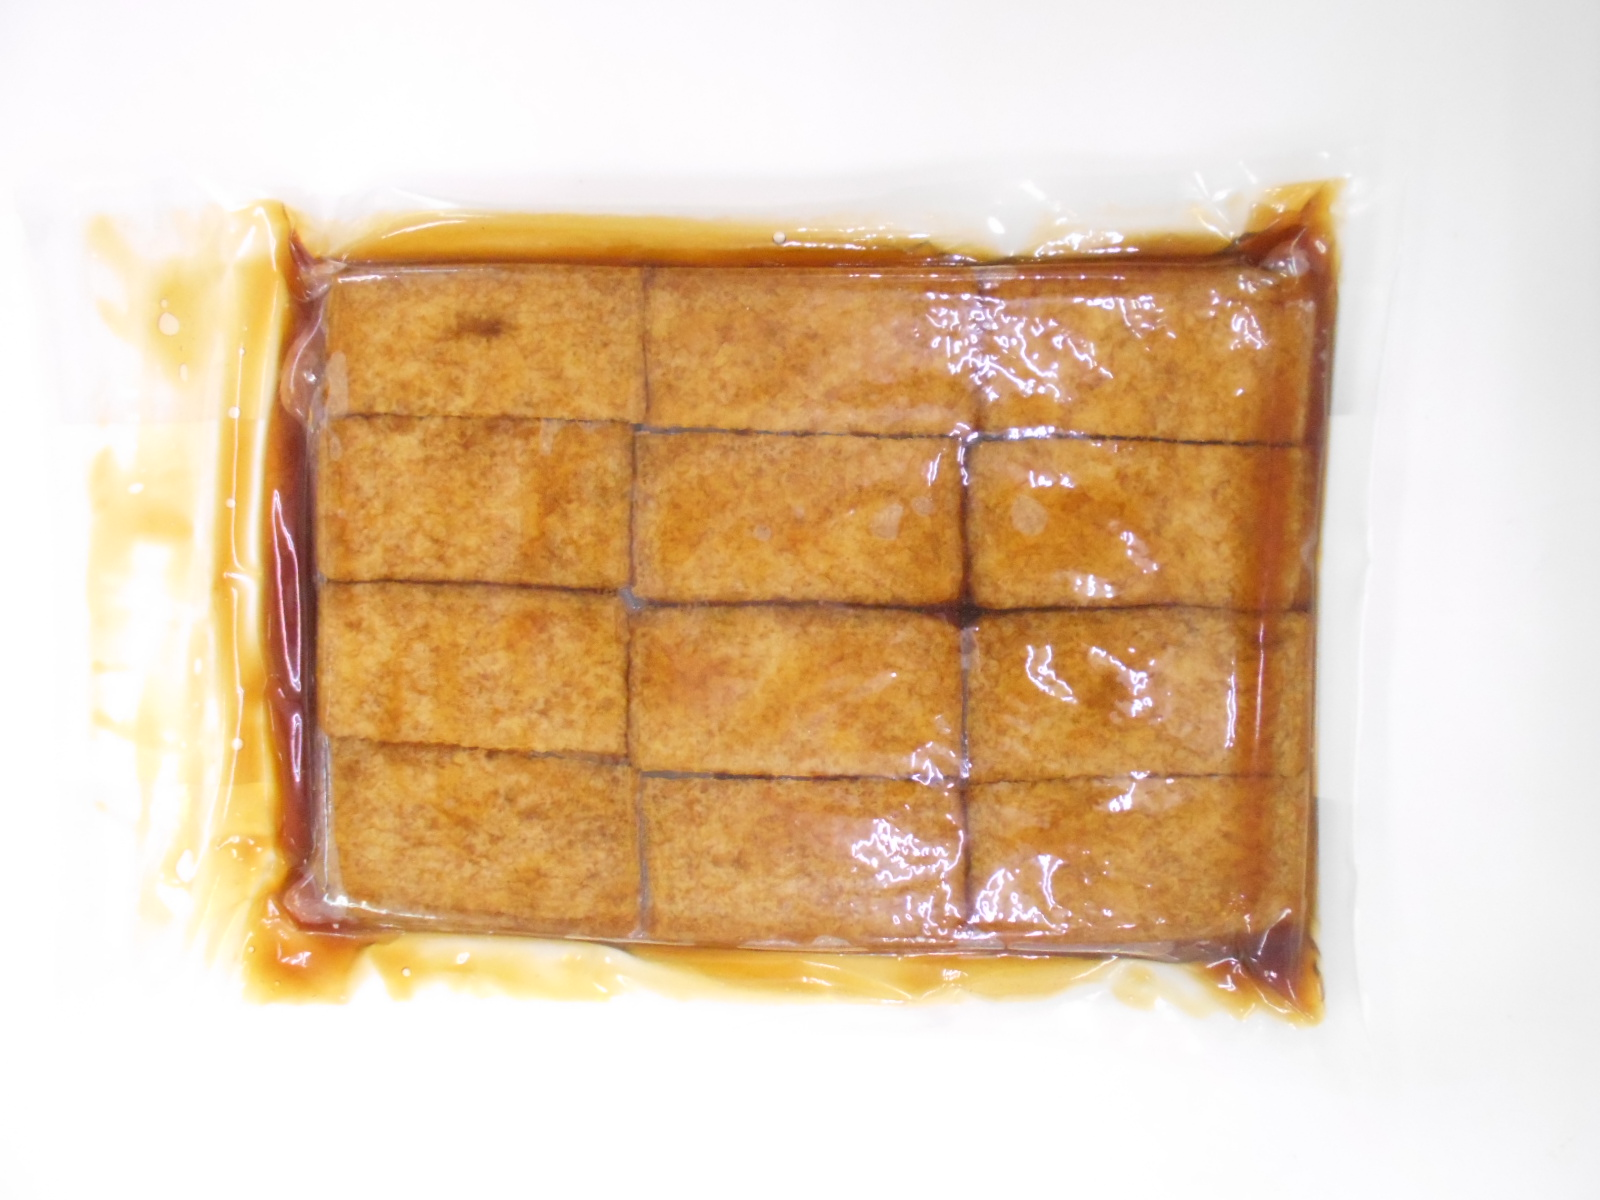 Japanese high quality traditional delicious dried bean curd skin for sale